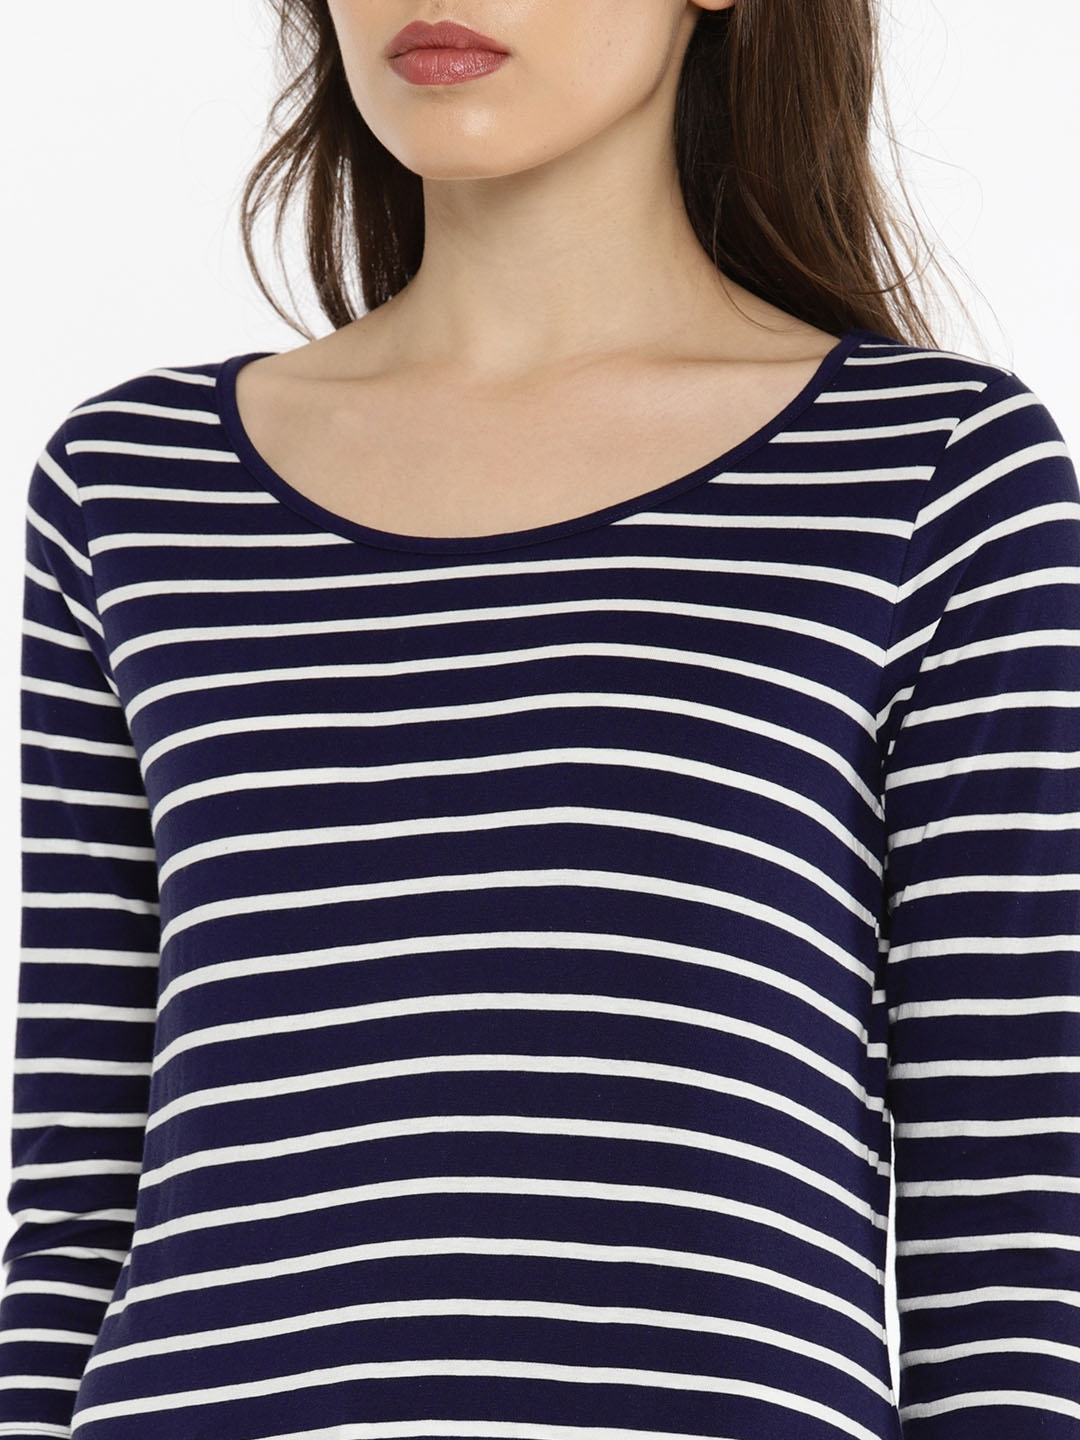 9b1f458cc7b96d Buy Fame Forever By Lifestyle Women Navy Blue & White Striped Top ...